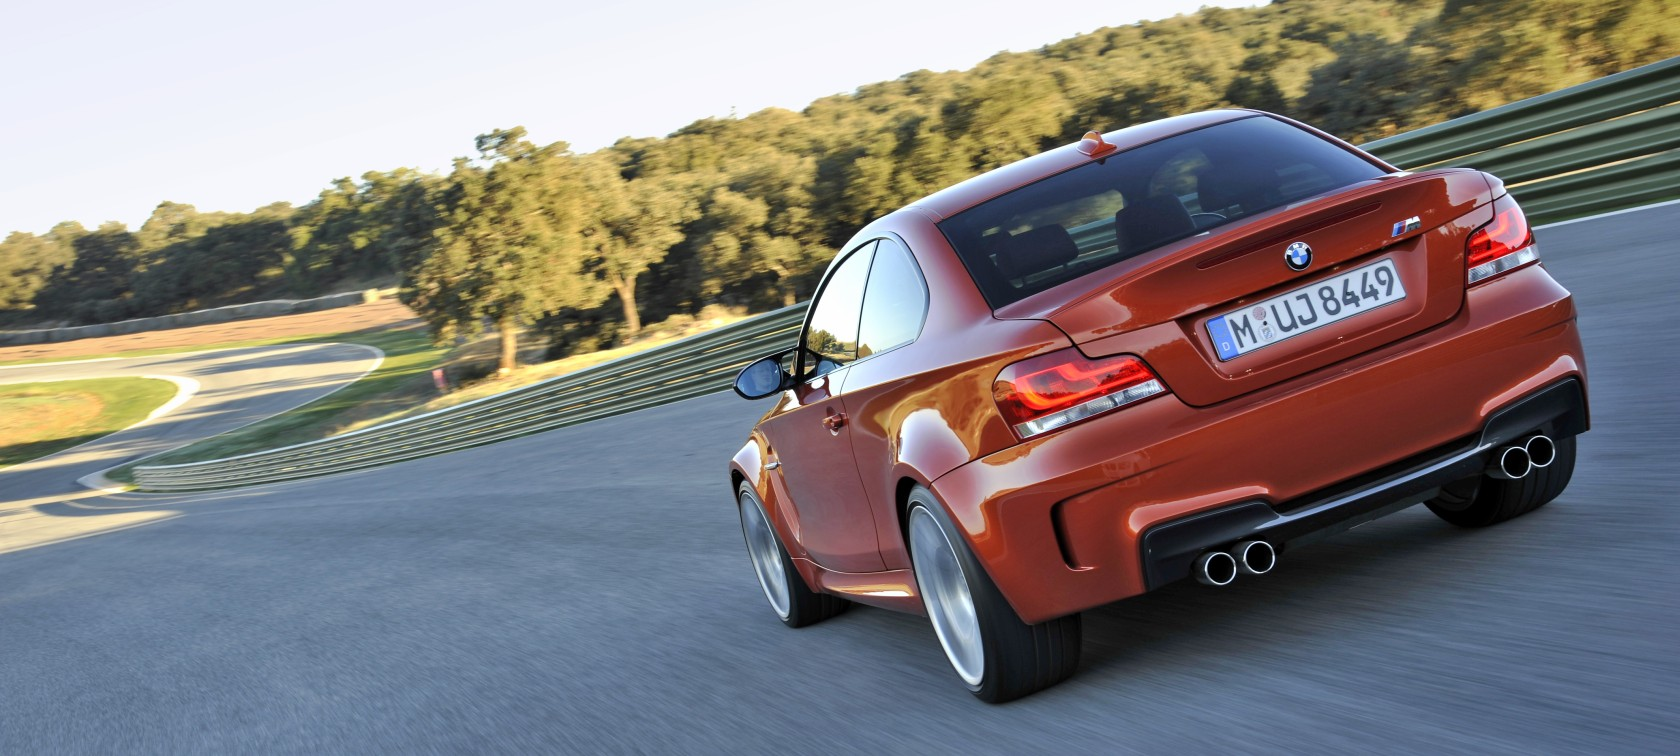 BMW 1 Series M Coupé driving on a race track